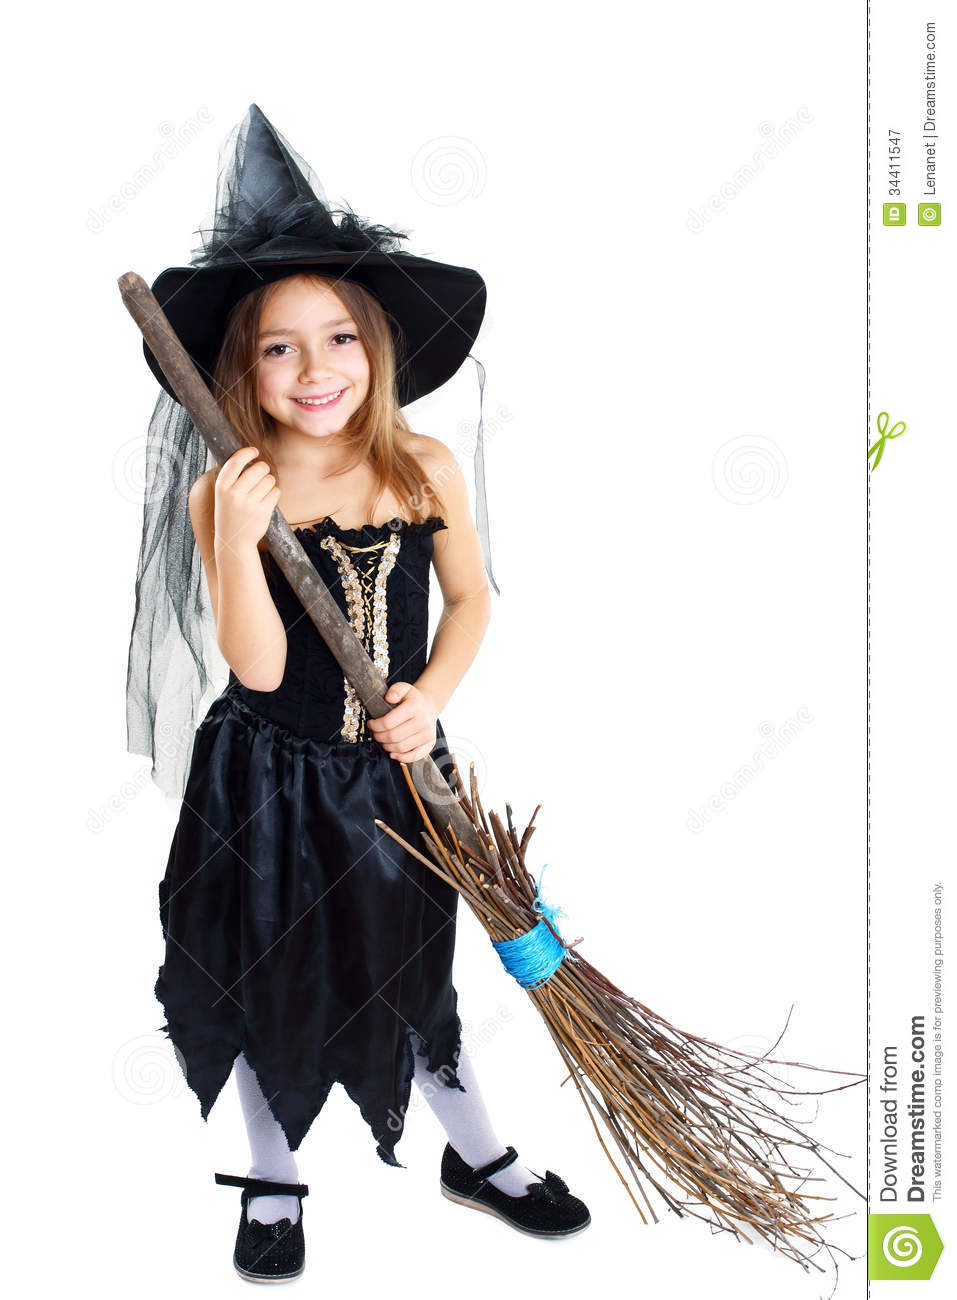 Halloween Costume Royalty Free Stock Photography - Image: 34411547